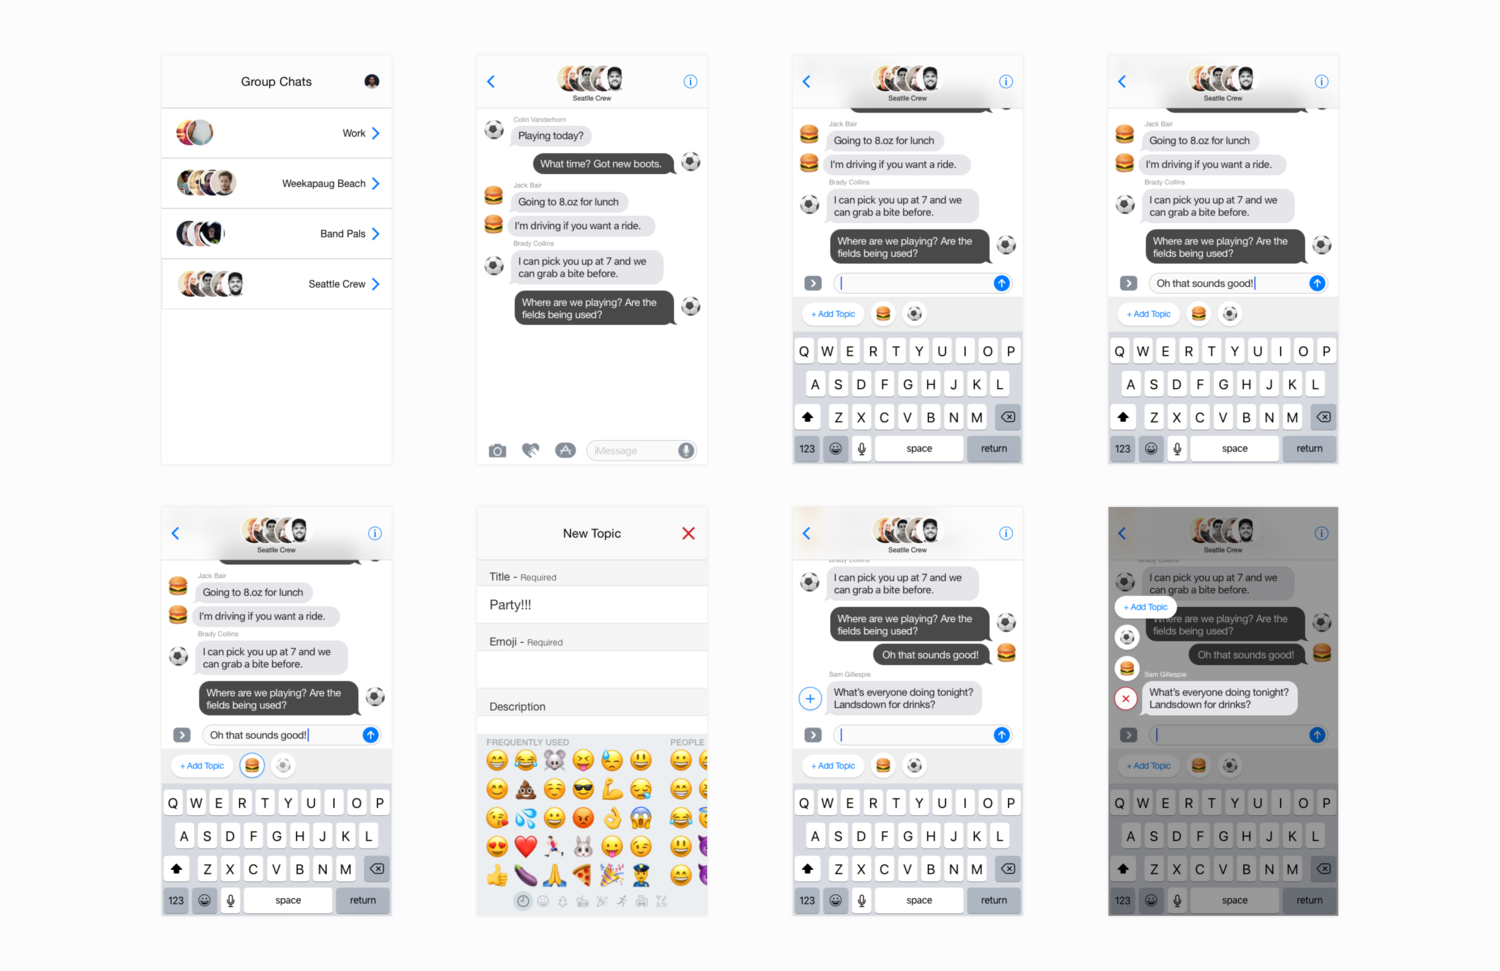 A Better Group Chat — Matthew Caggiano